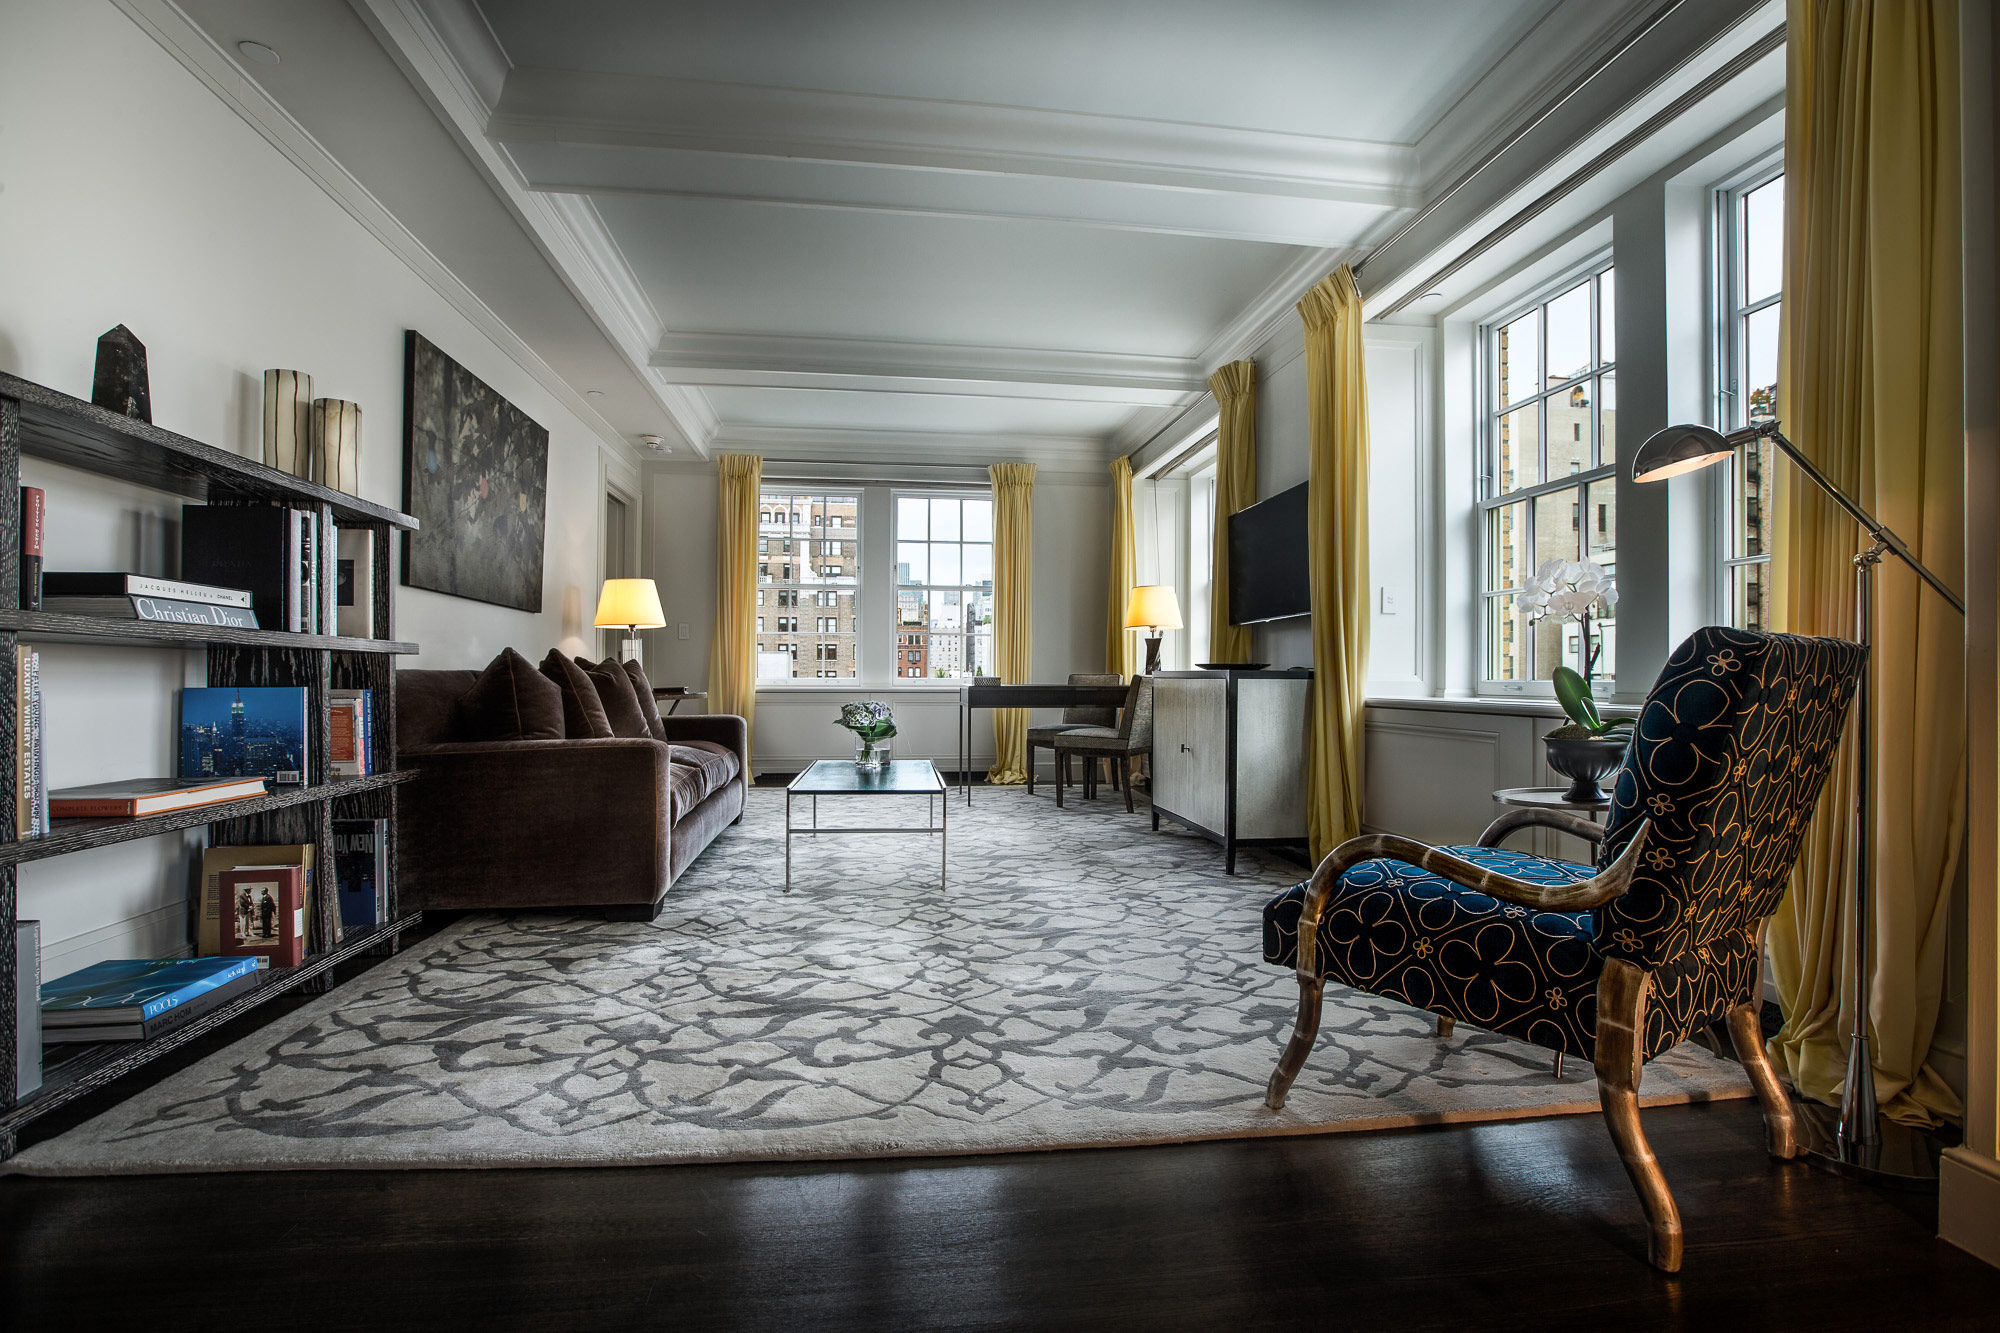 Mark premier two bedroom luxury hotel suite the mark hotel new york ny for 2 bedroom suite in new york city